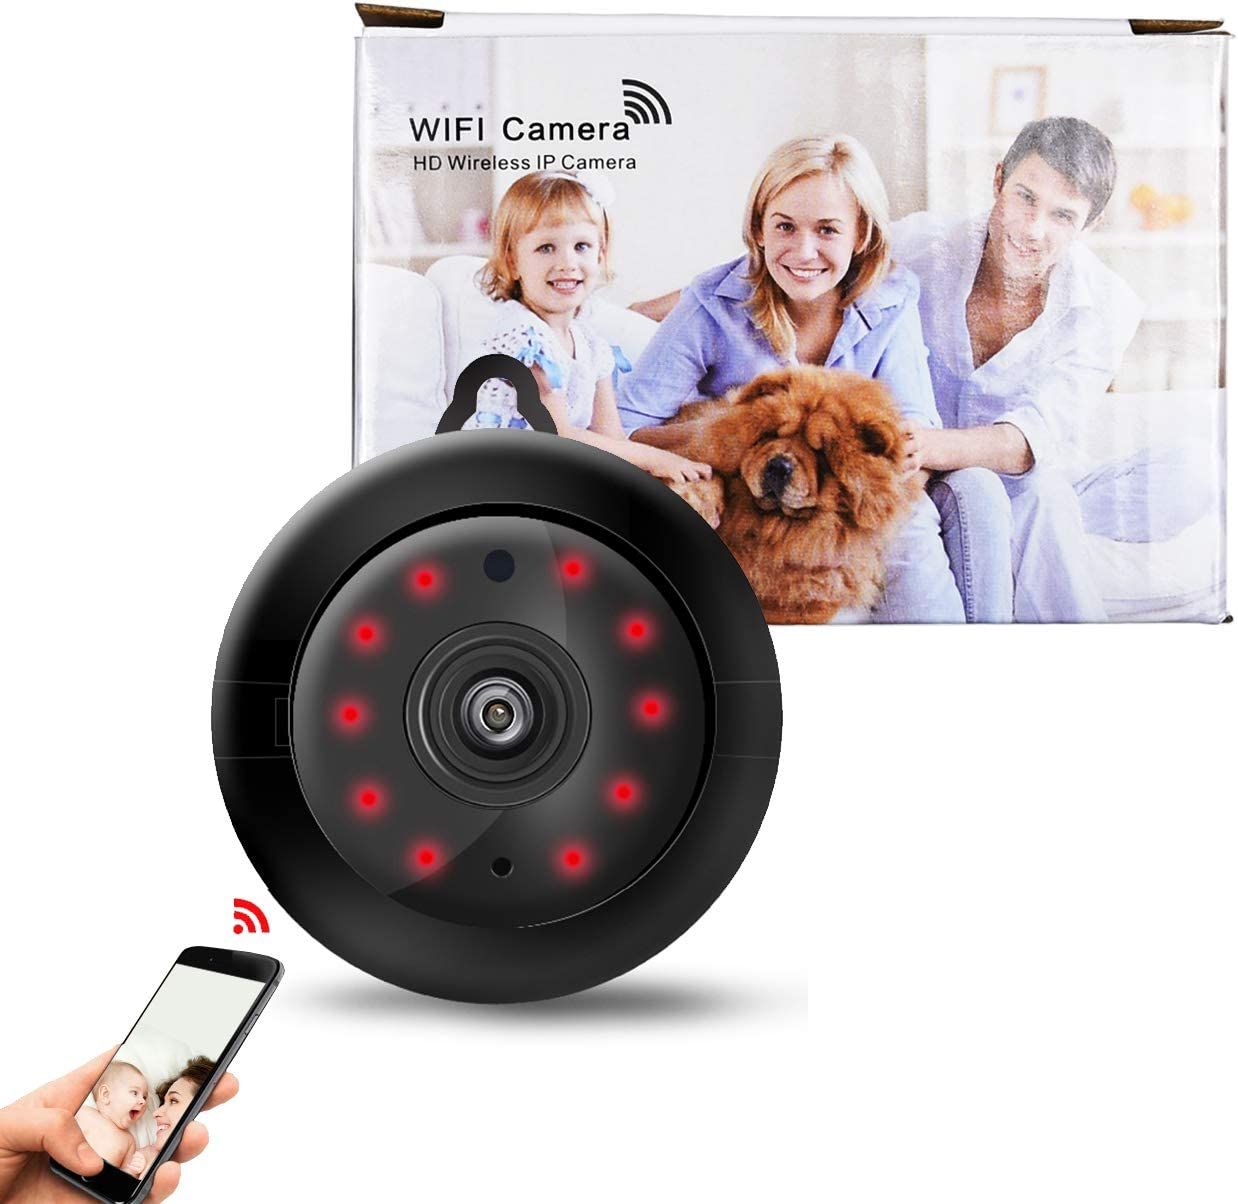 WiFi Wireless Home Security HD Video Camera/Dome Camera/Night Vision/Home IP Camera/Motion Detection/Security Surveillance System/Mini Size, iOS/Android App - Cloud Service Available_Hookup